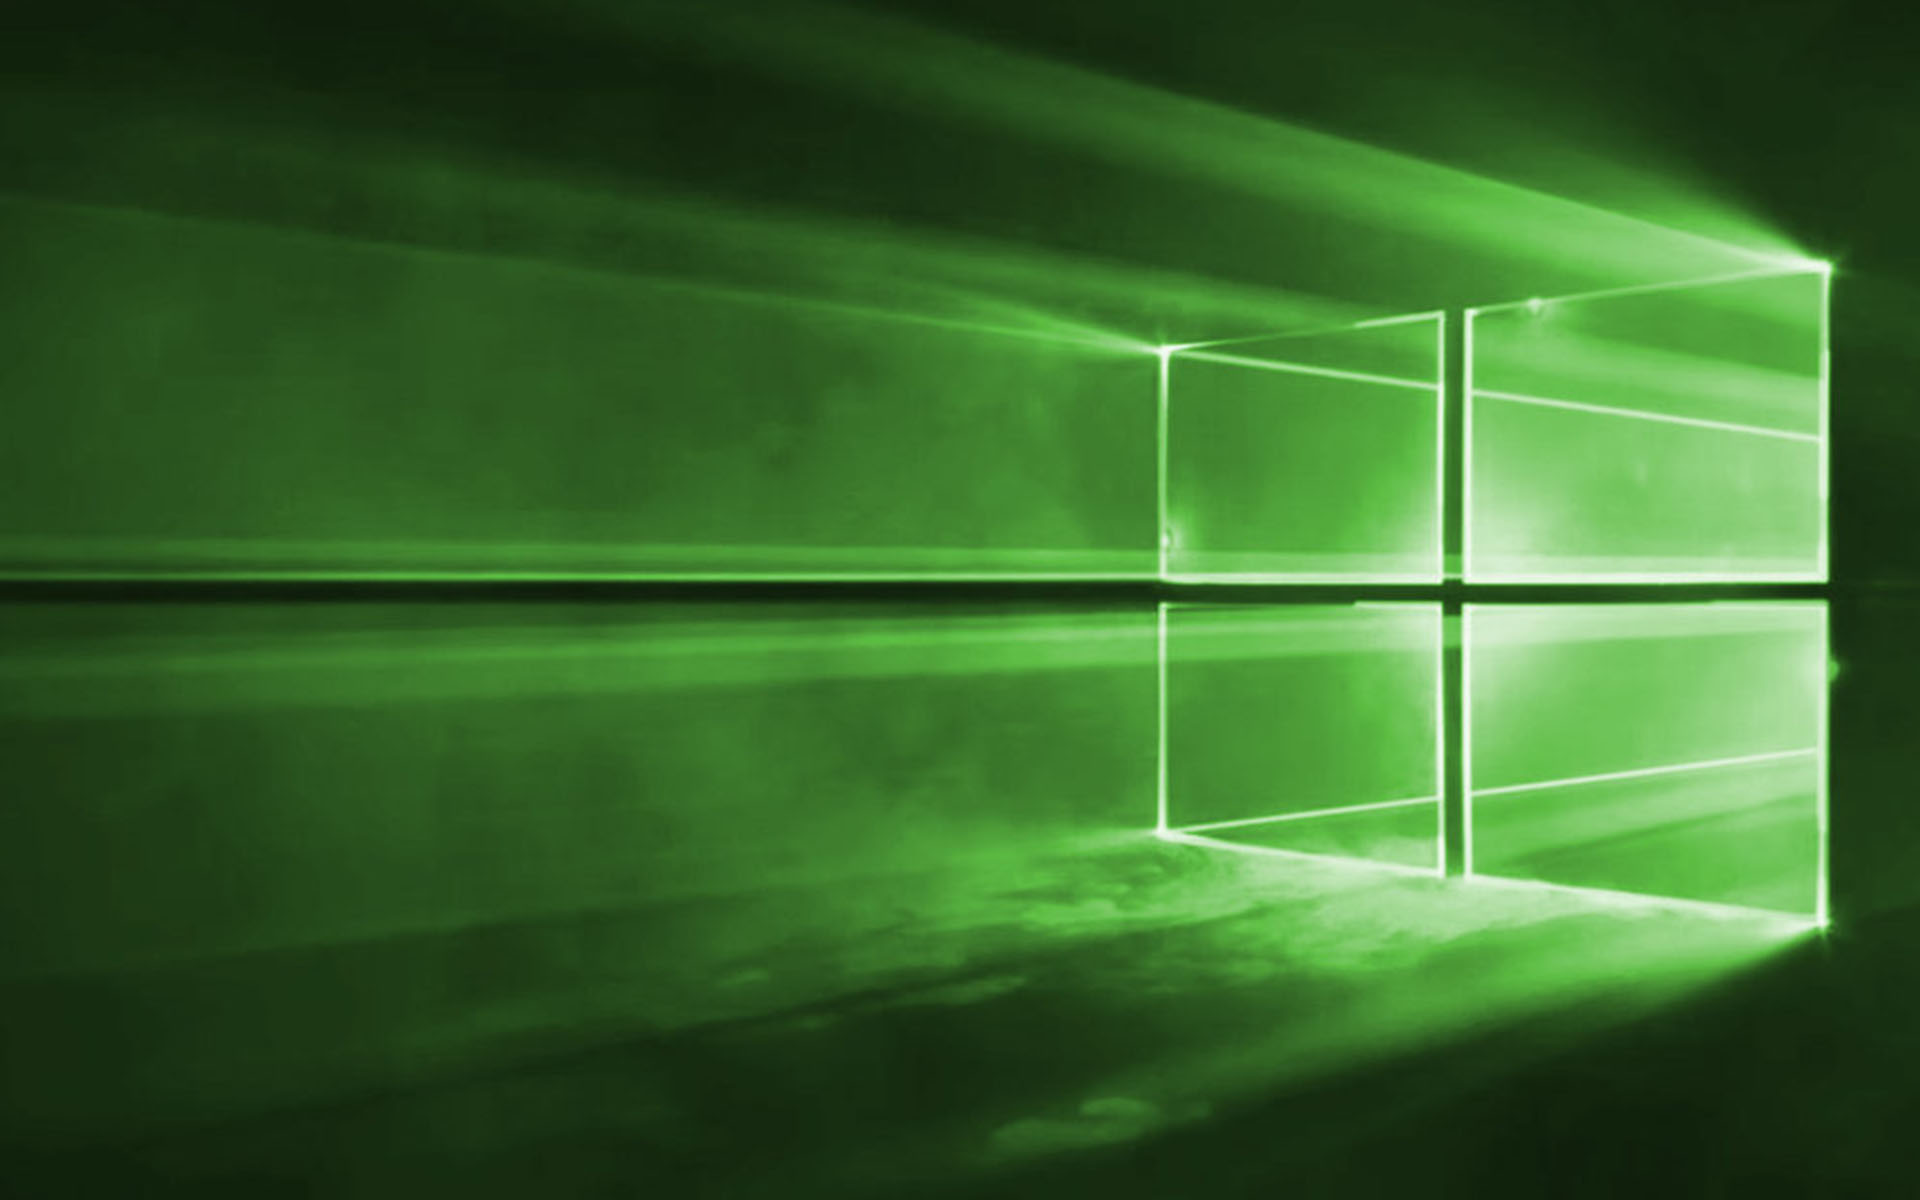 Green Windows 10 Wallpaper   Wallpapers 1920x1200